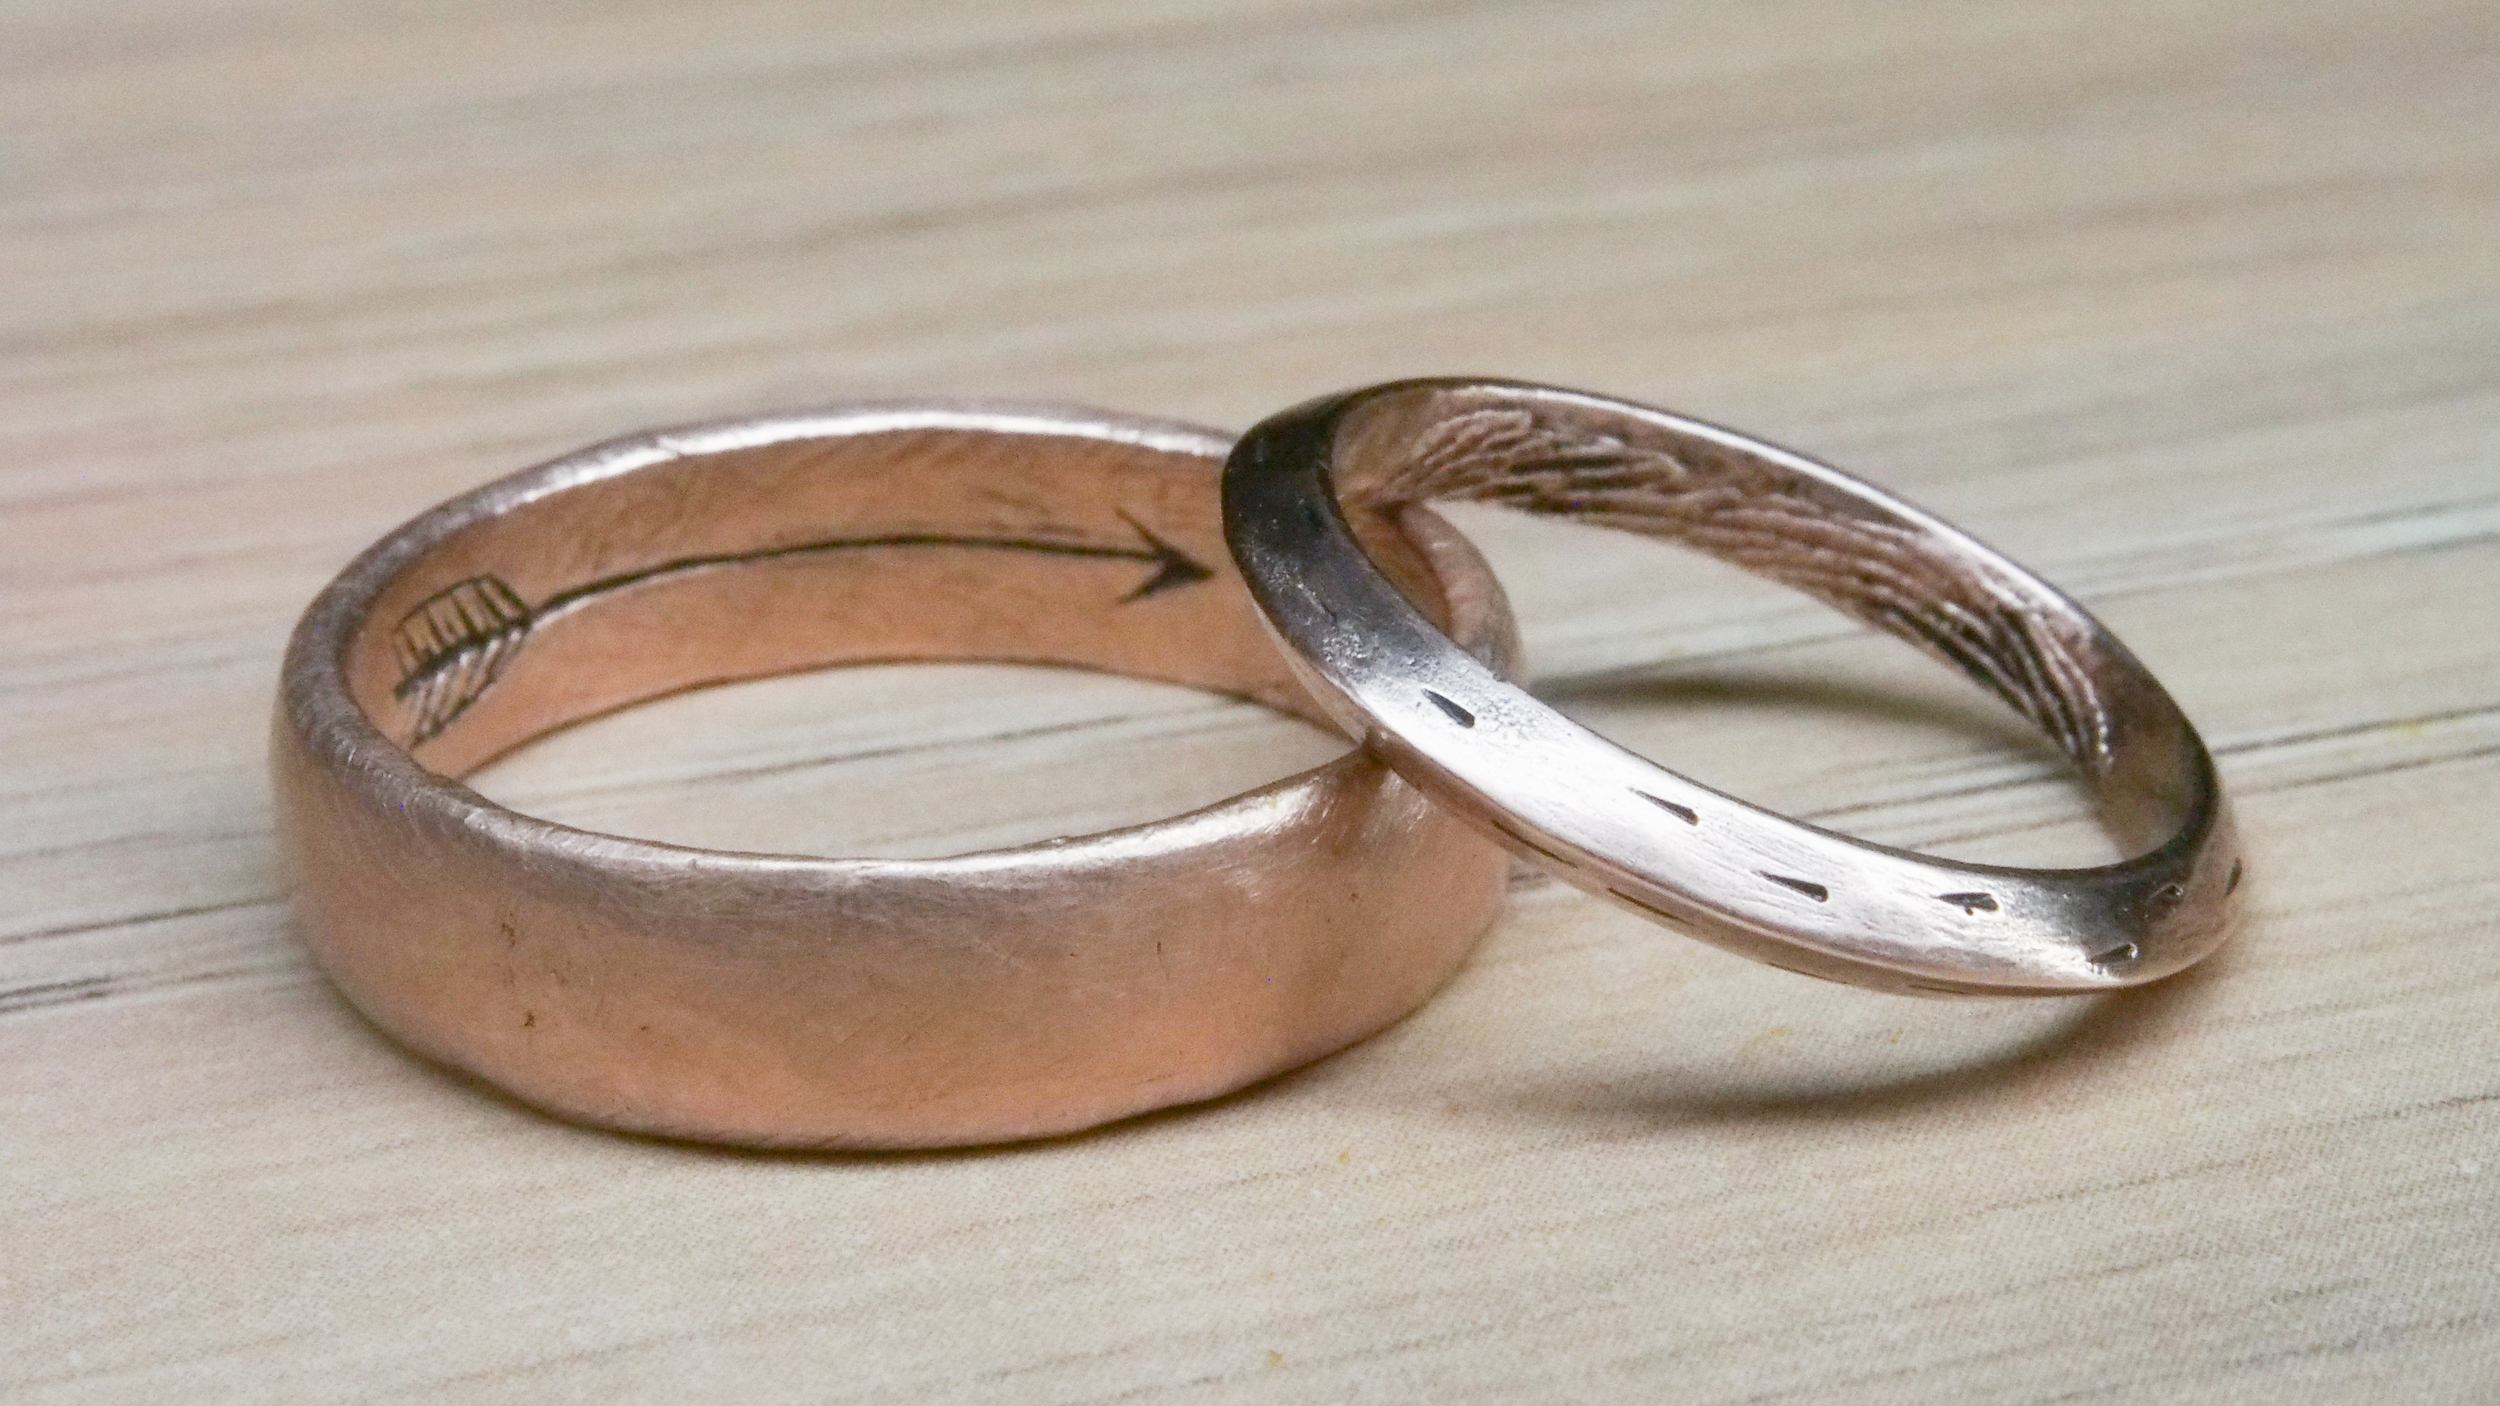 Wedding Bands for Chris and Stacia